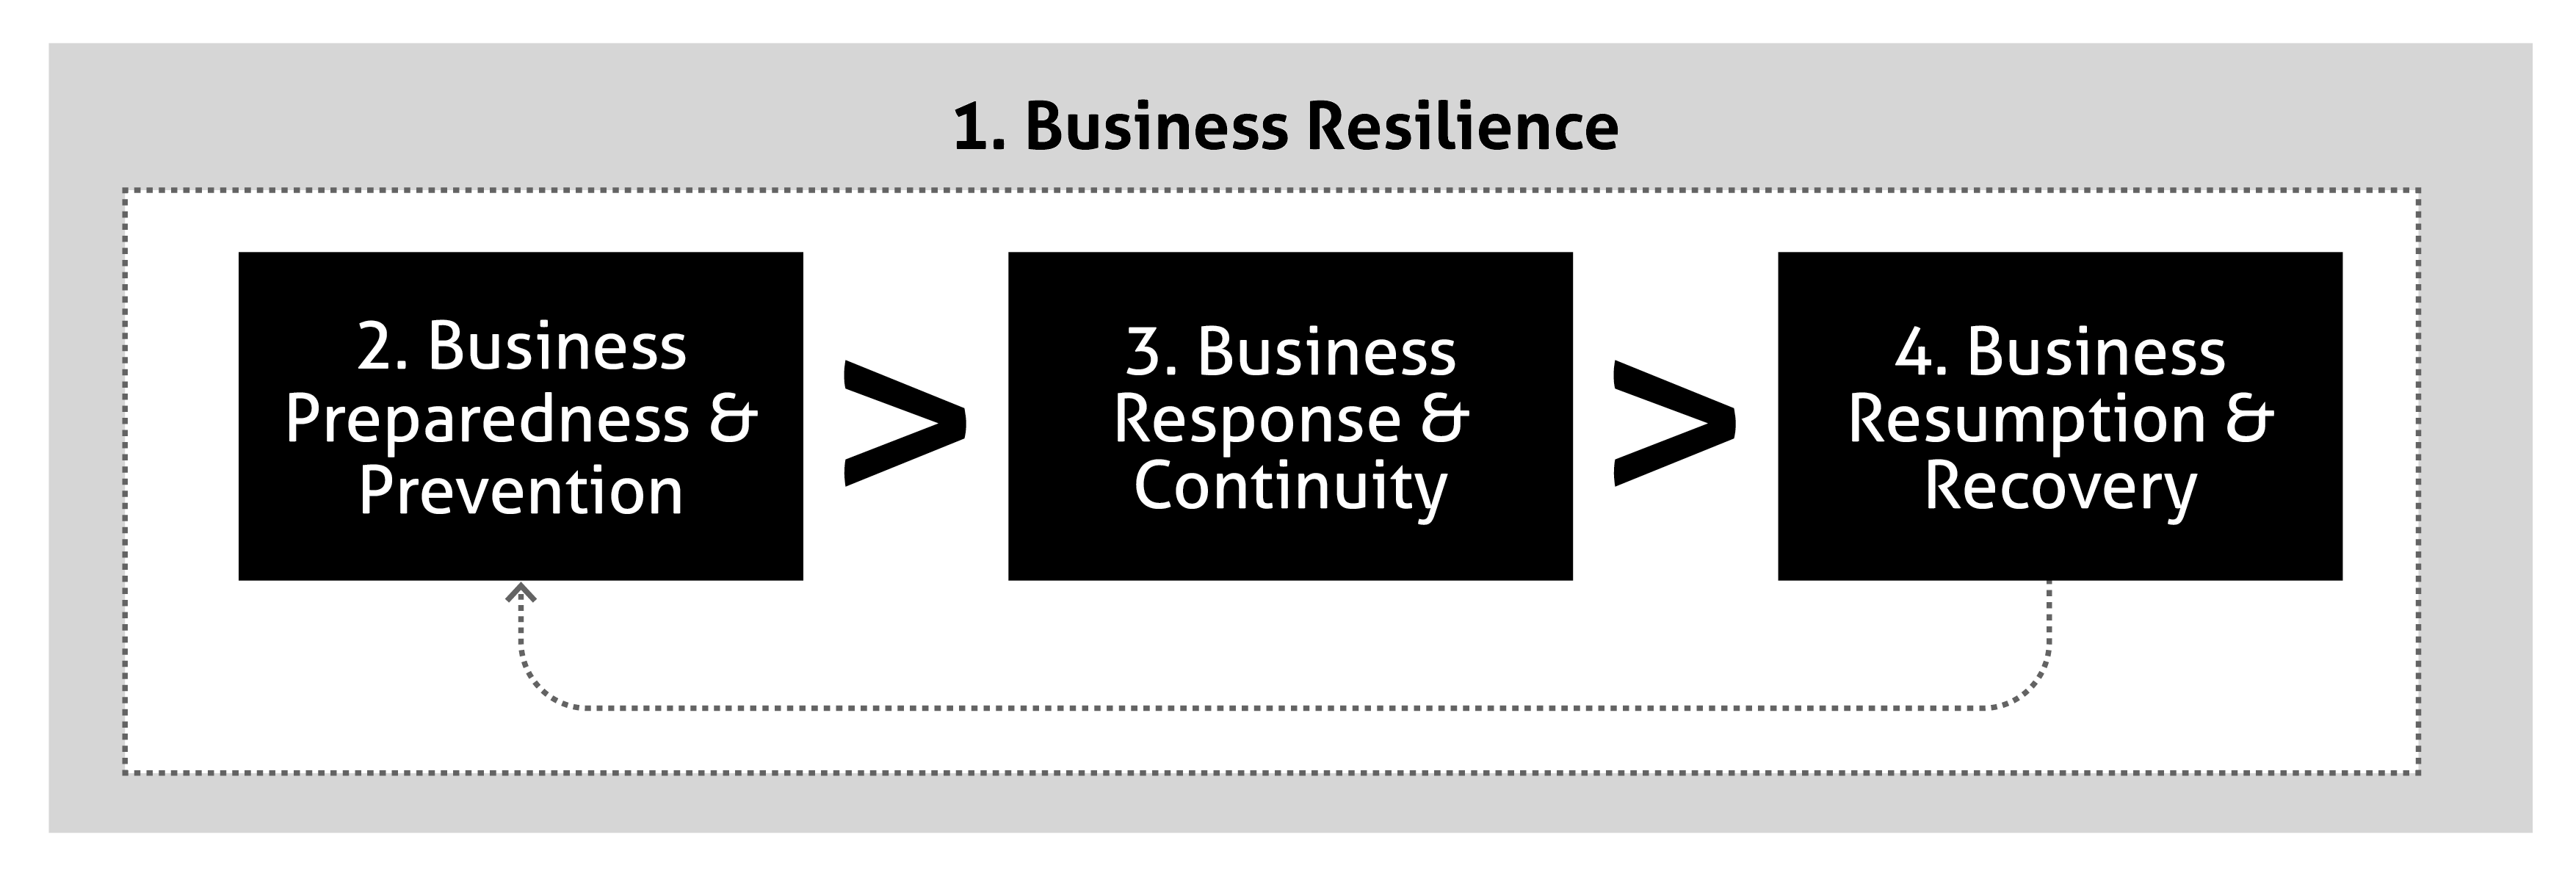 Diagram for business resilience